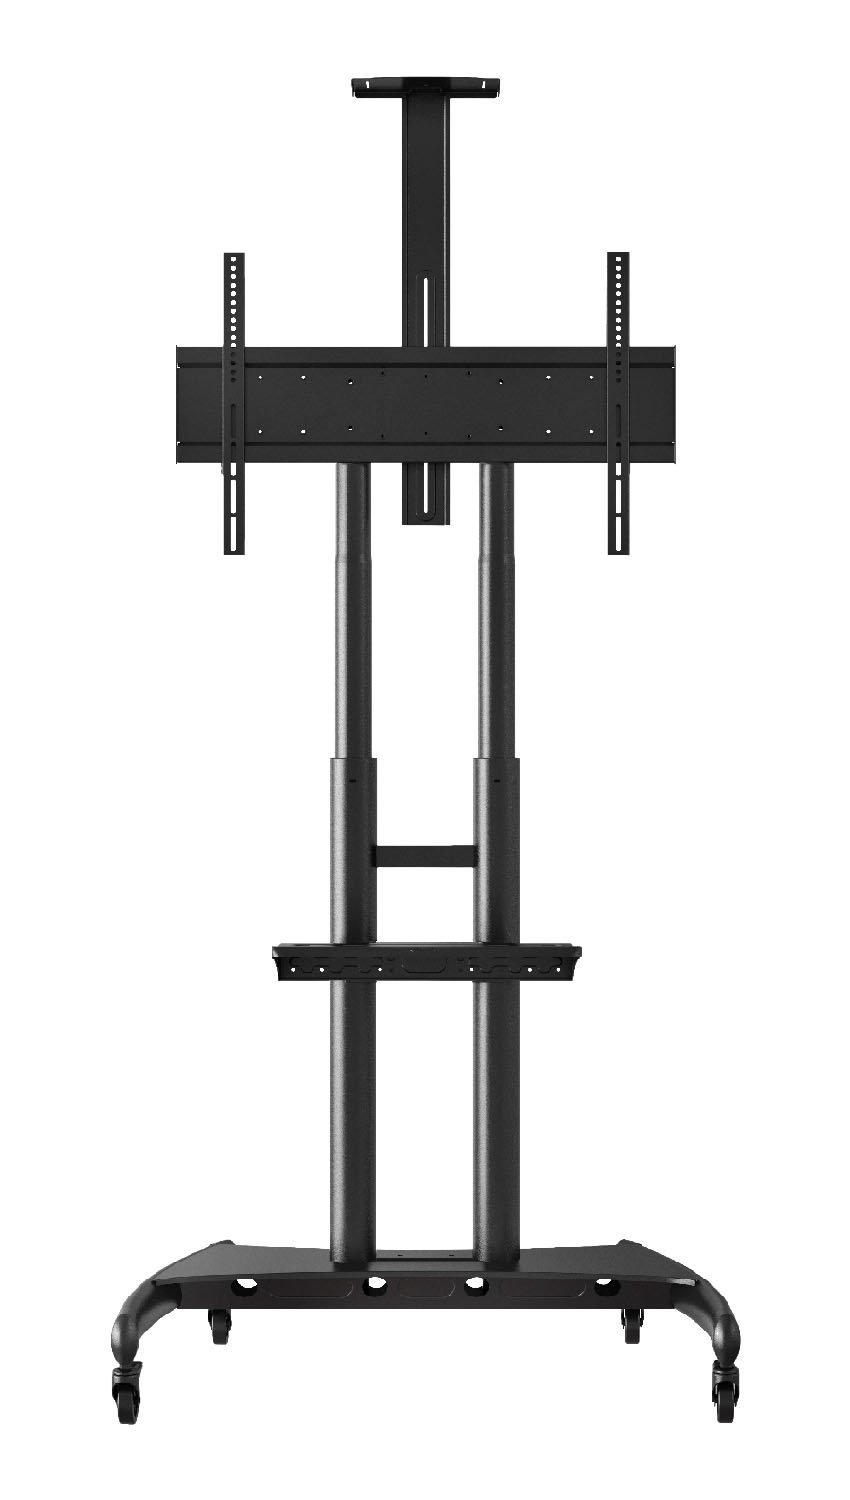 Luxor FP4000 Adjustable Height Large TV Mount designed for a 40'' - 90'' Flat Panel TV by Luxor